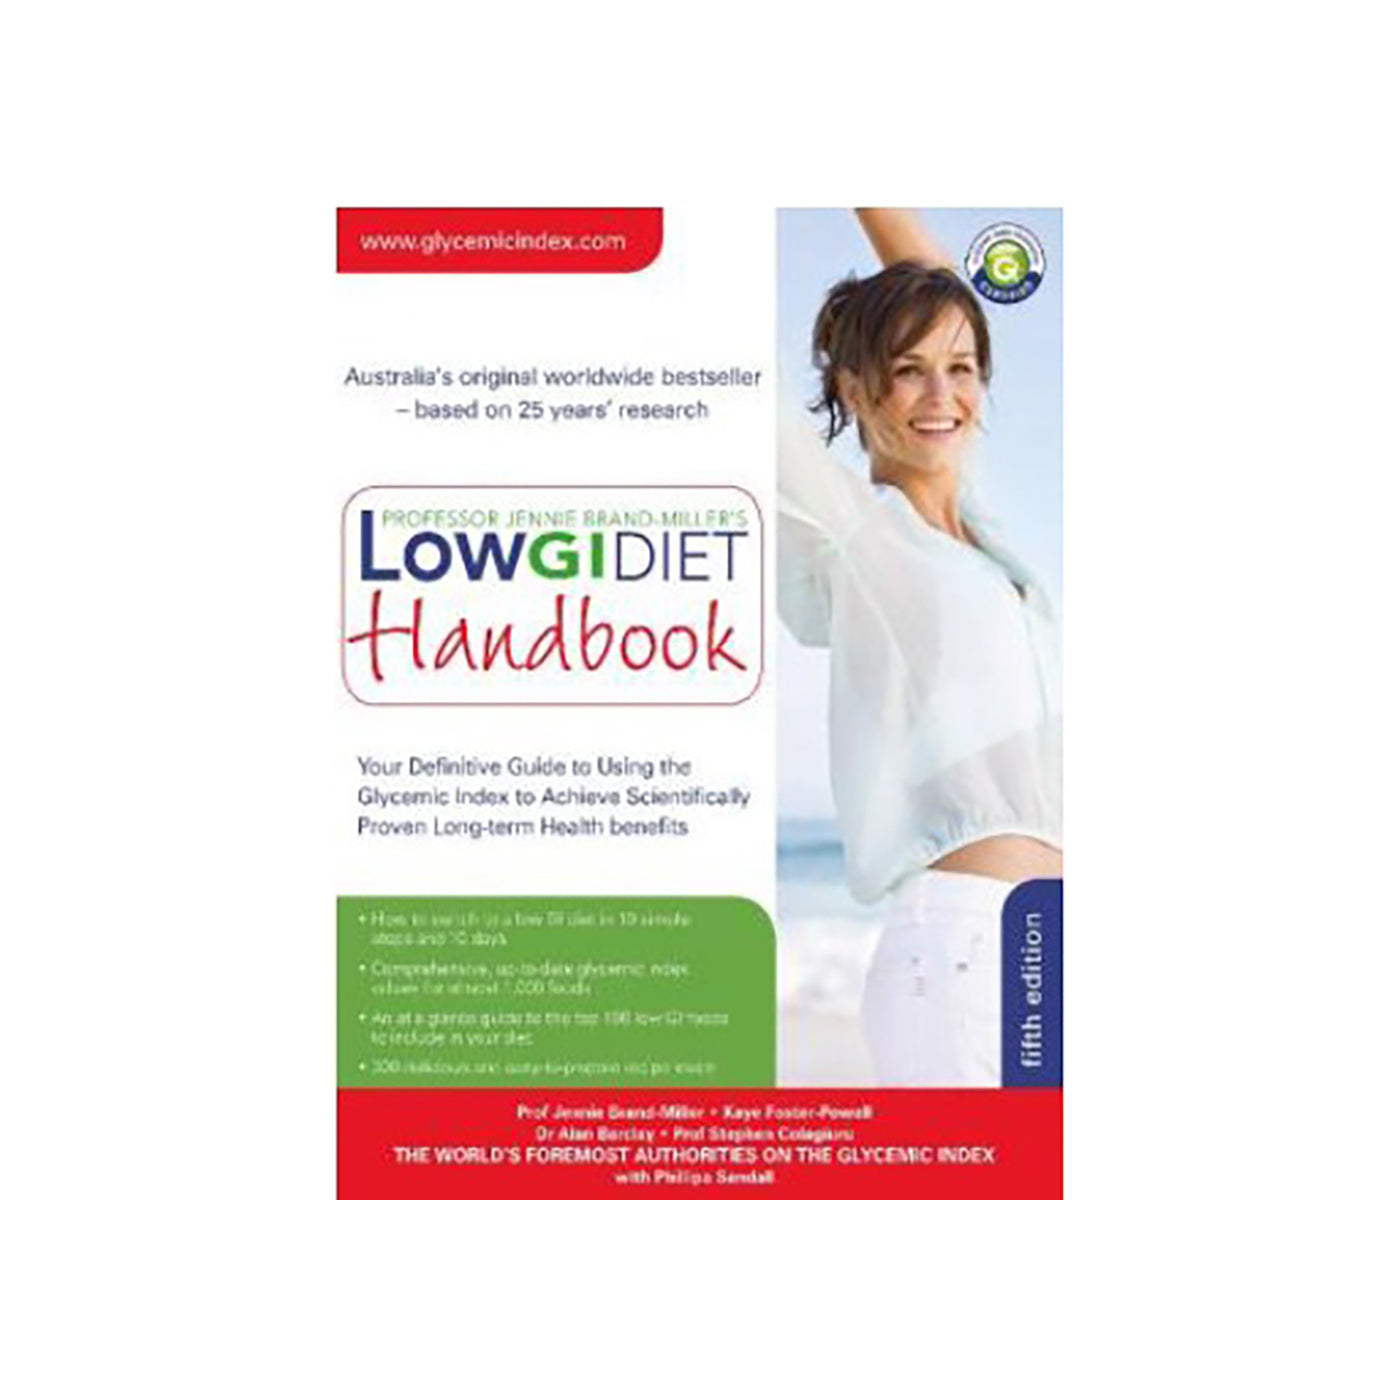 Low GI Diet Handbook